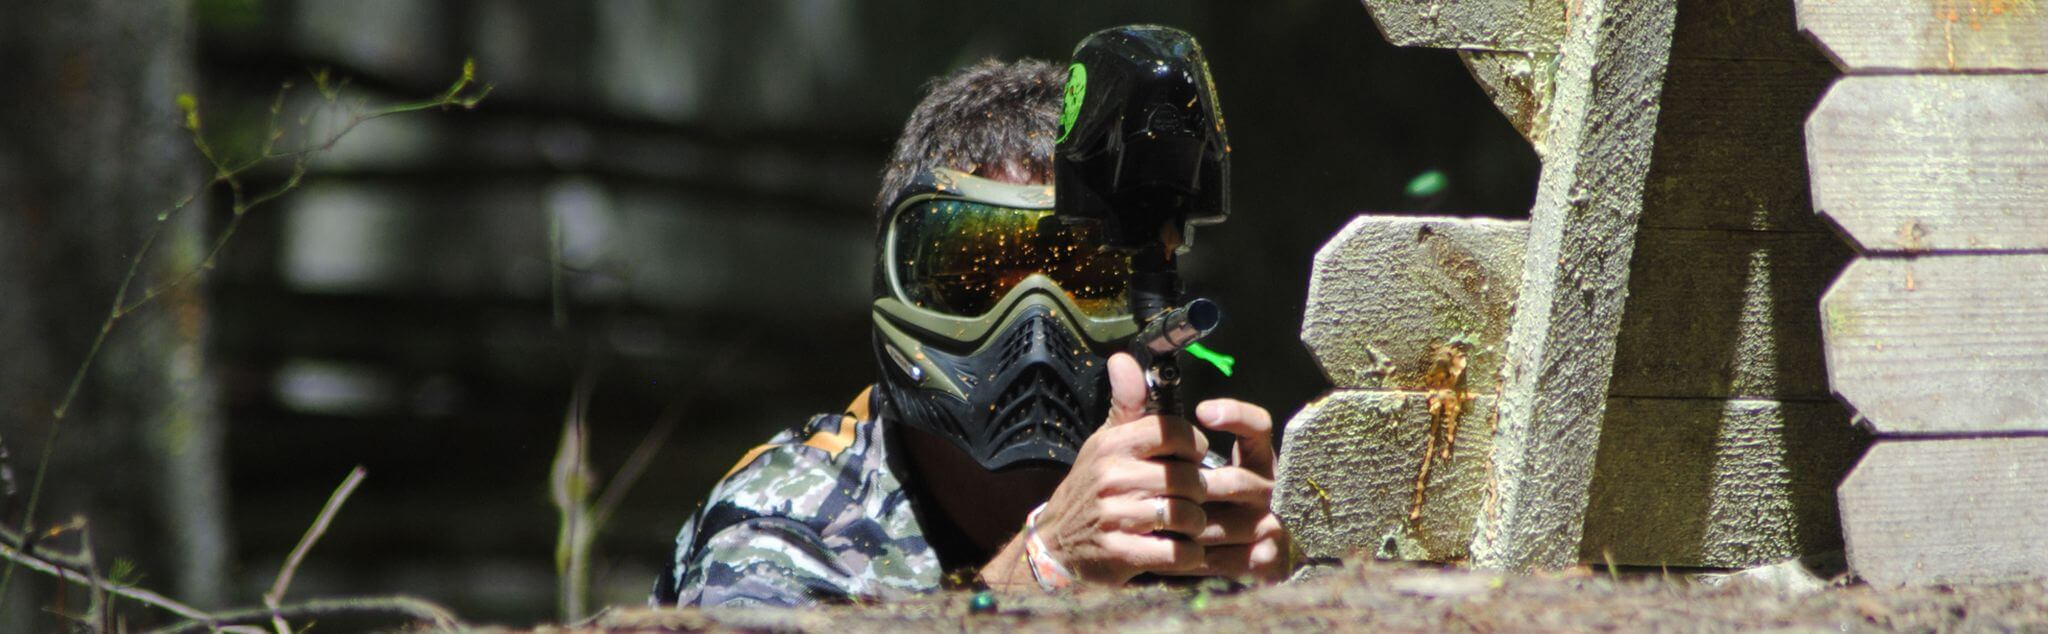 Paintball in Santa Susanna